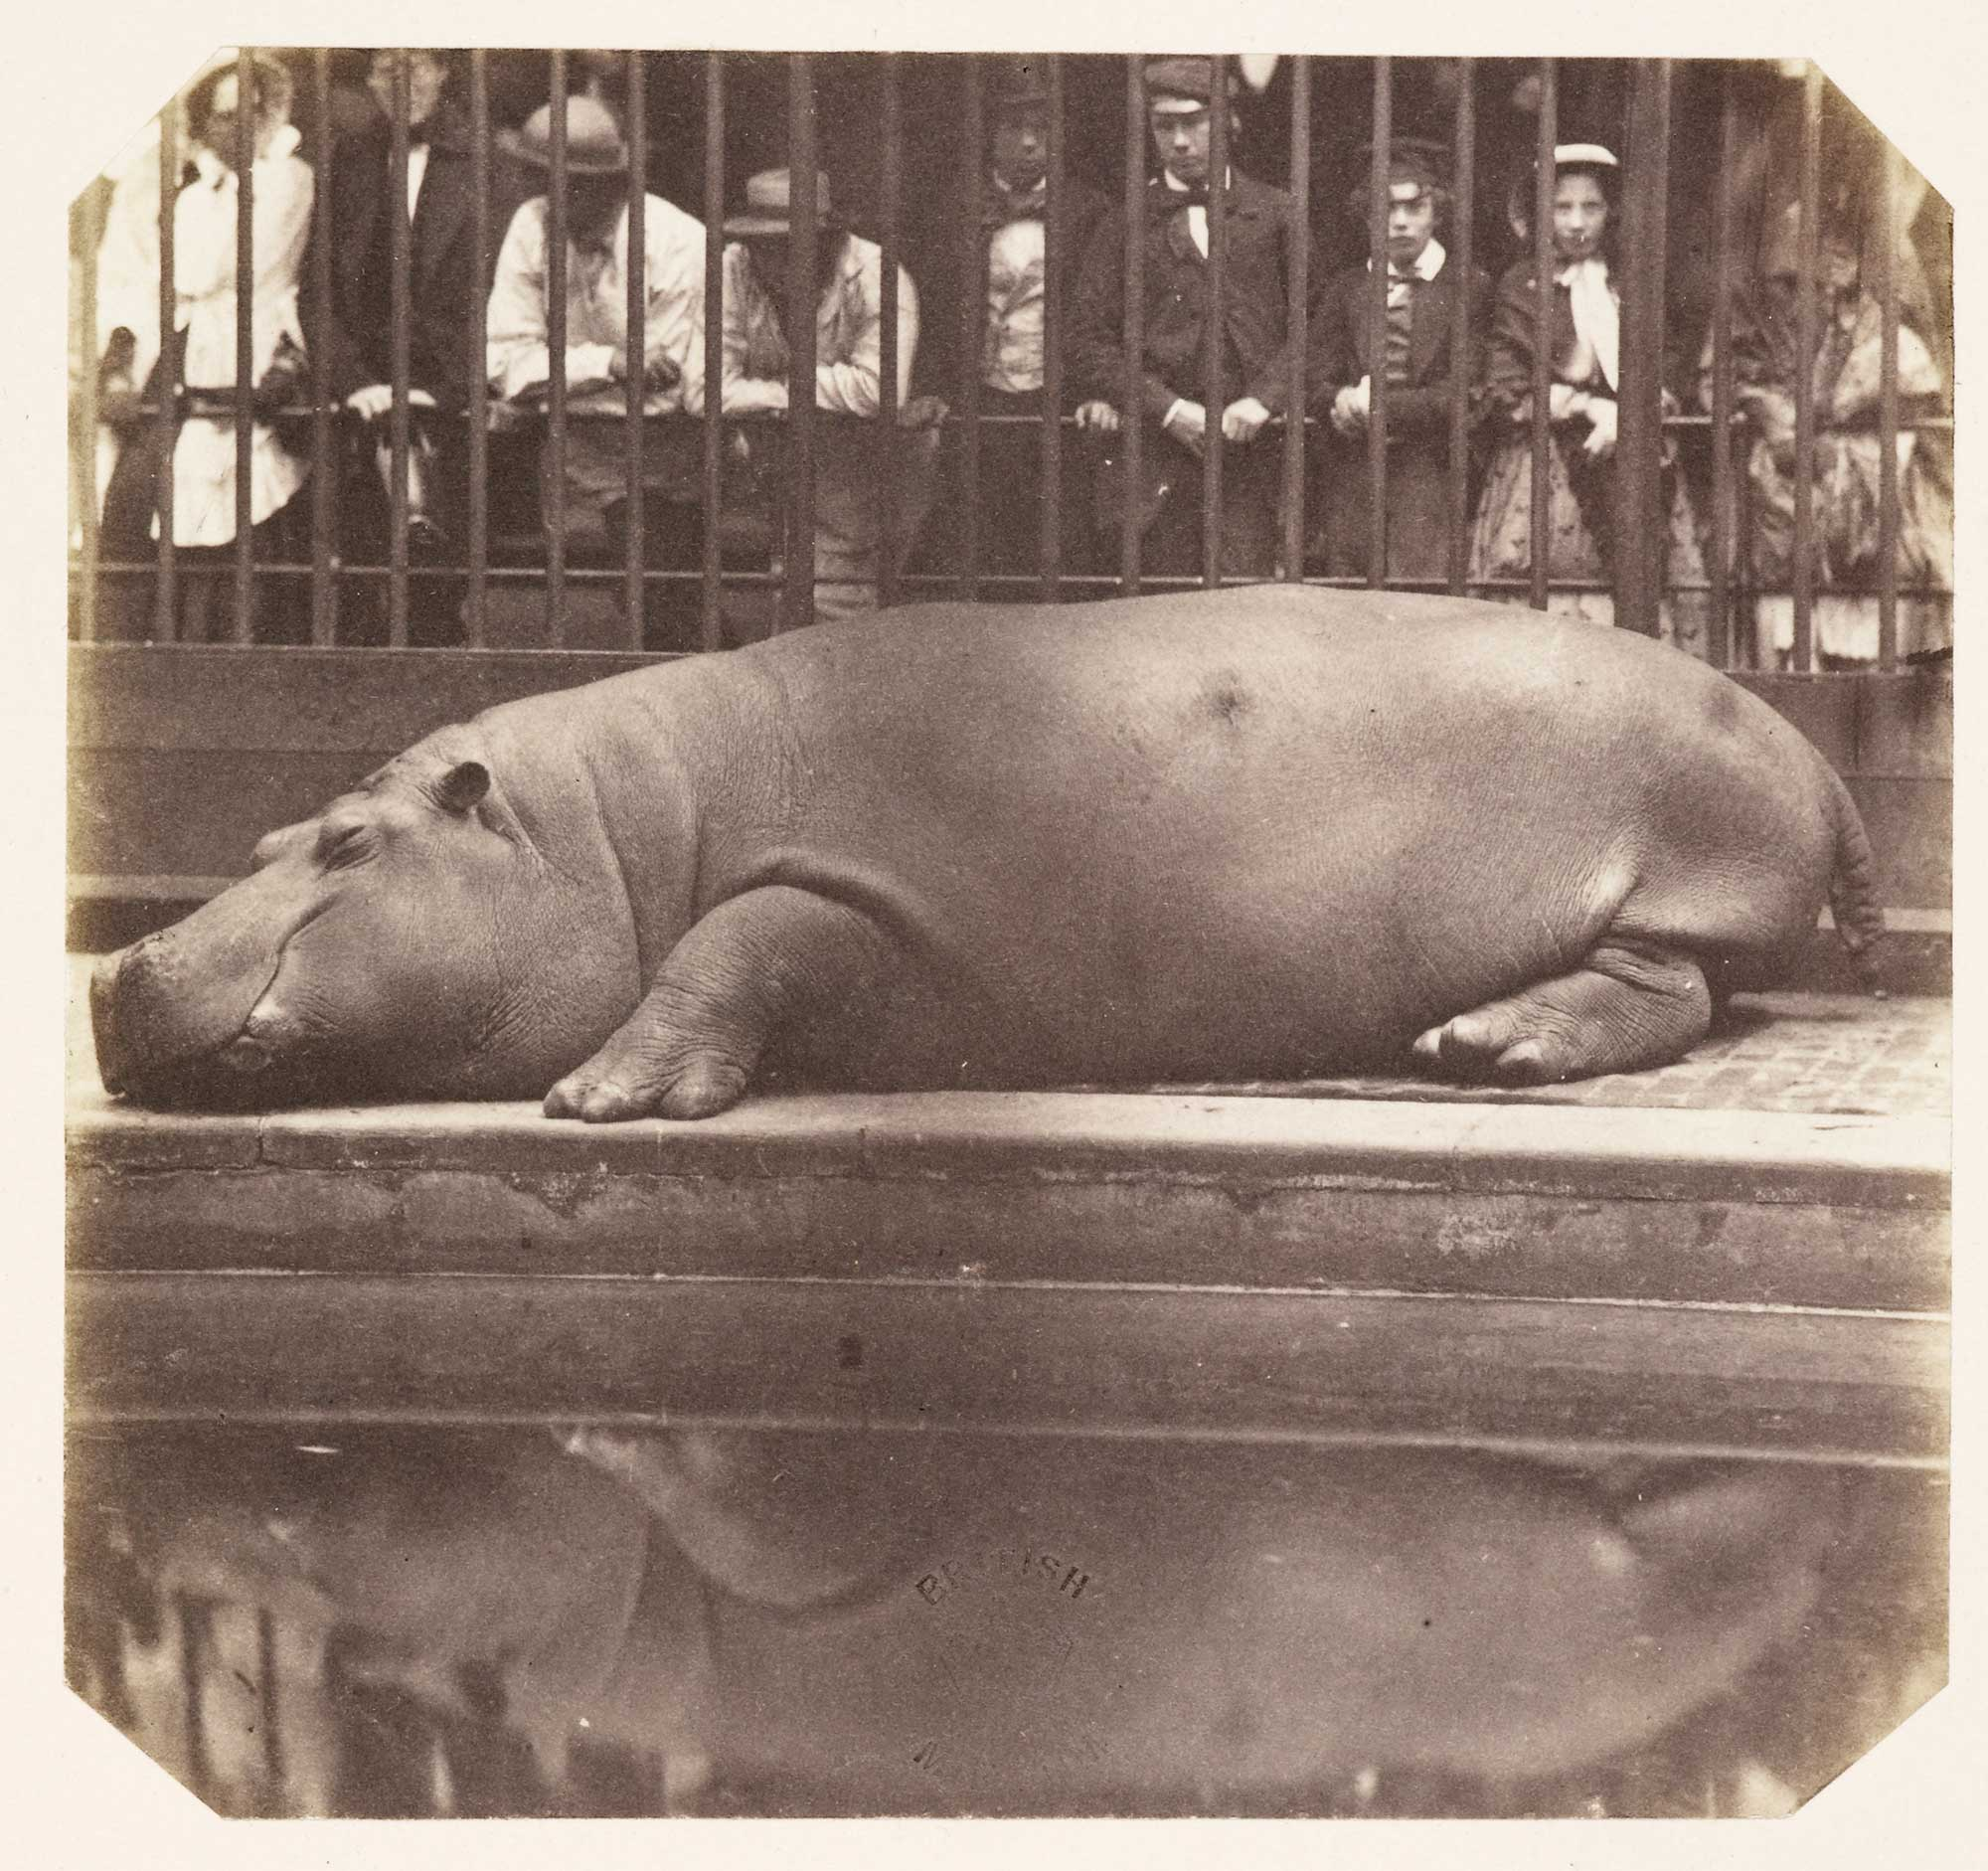 Photograph of hippopotamus from The Photographic Album for the year 1855